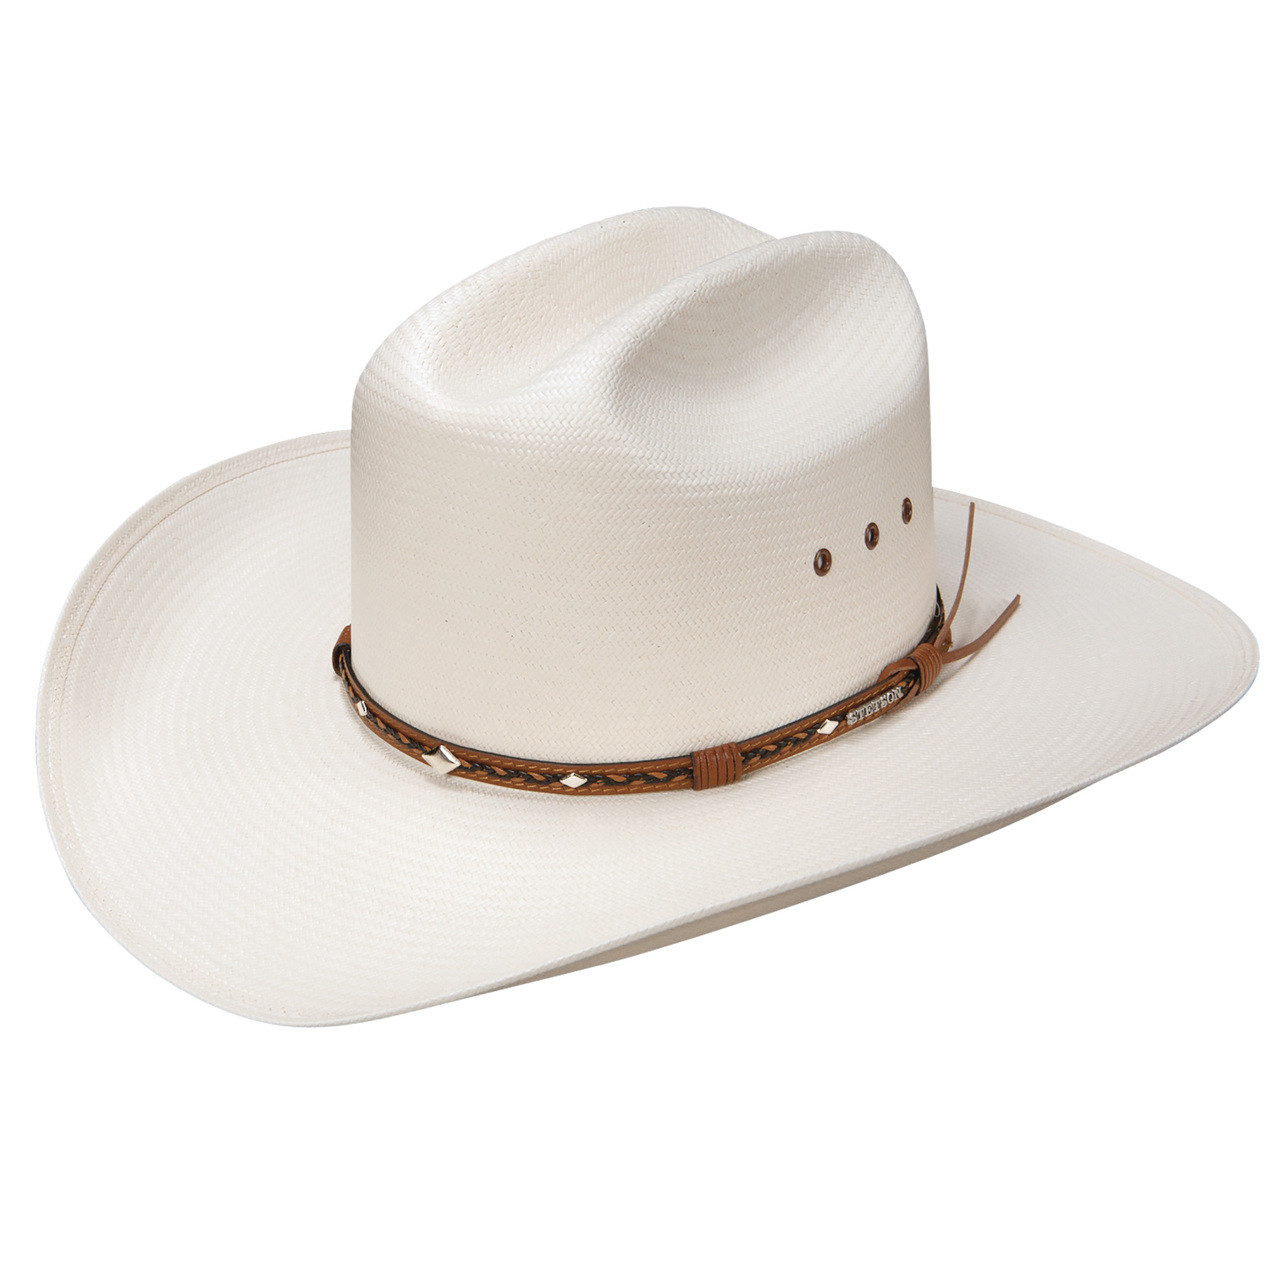 c945aa714ee9e Stetson Mens Hats - Ocala-N - 8X Straw Cowboy Hat - Billy s Western Wear